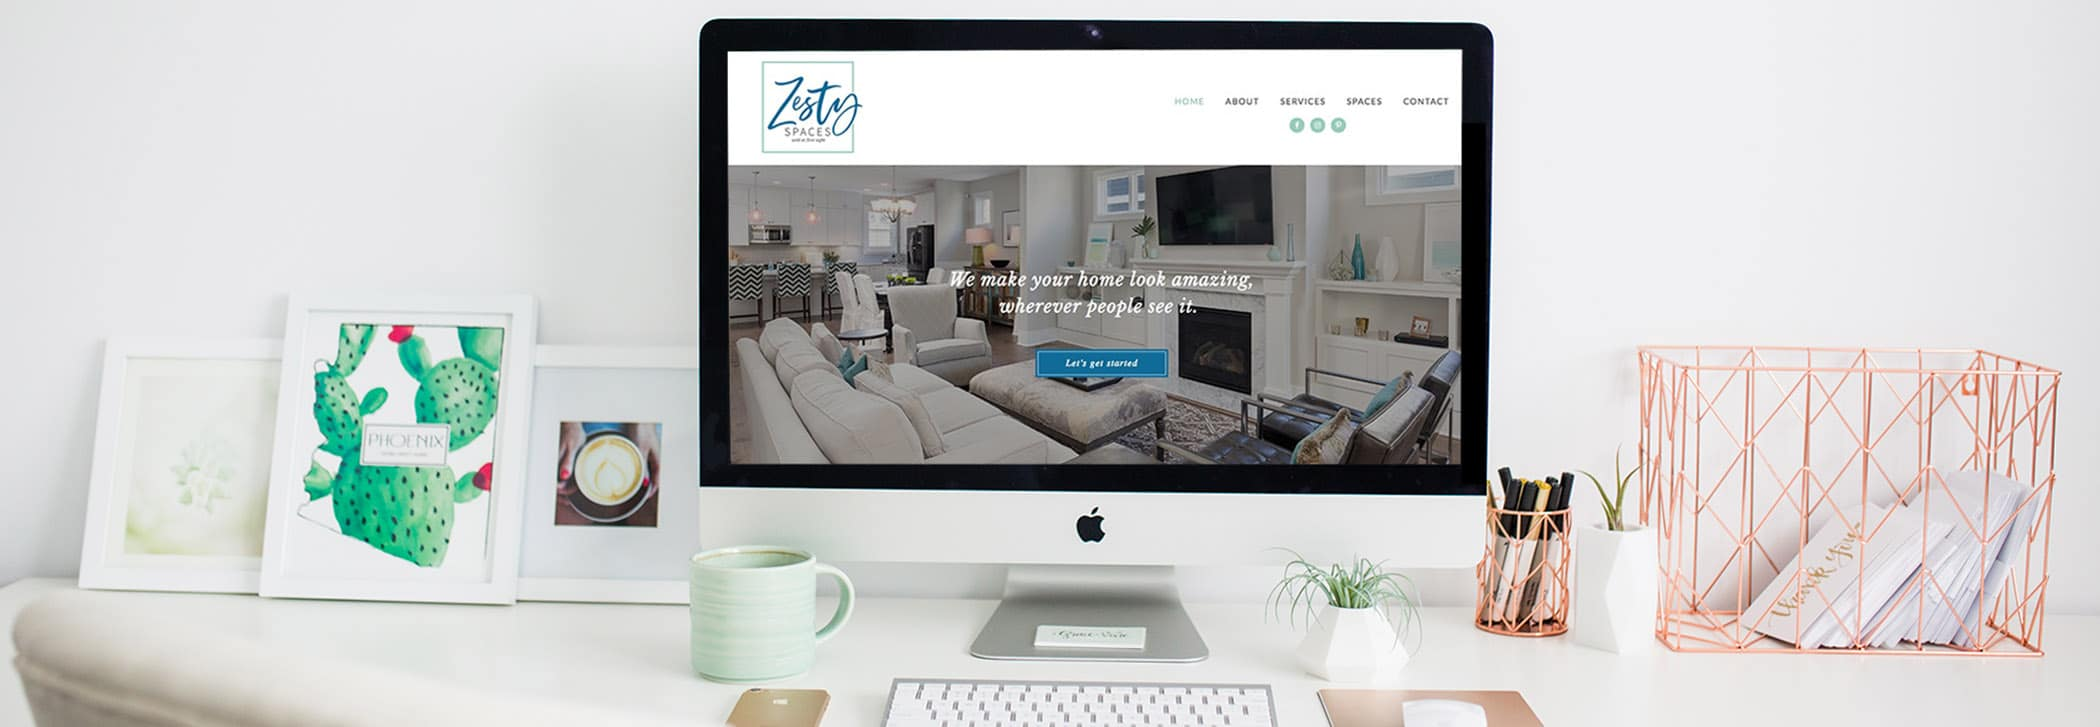 home-staging-website-design-gv